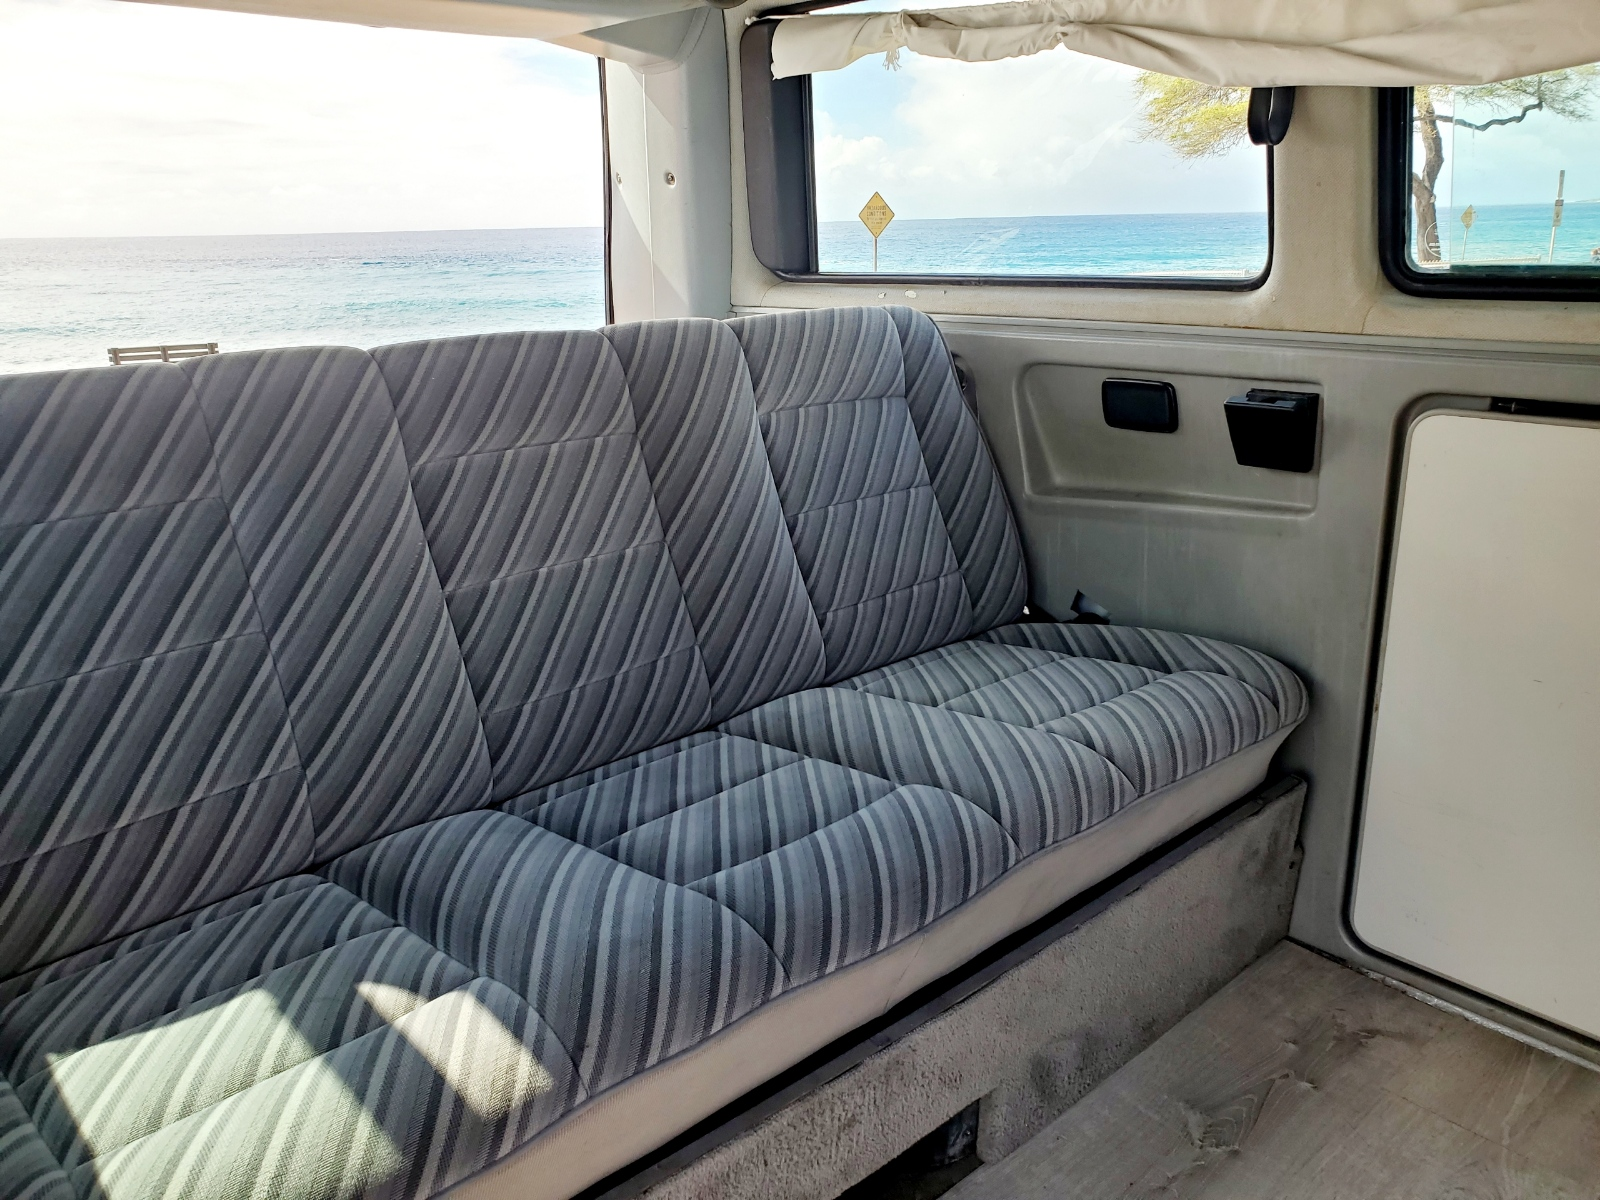 Back seat folds down into a bed, or keep it up for 3 seats with seatbelts.. Volkswagen Vanagon 1989